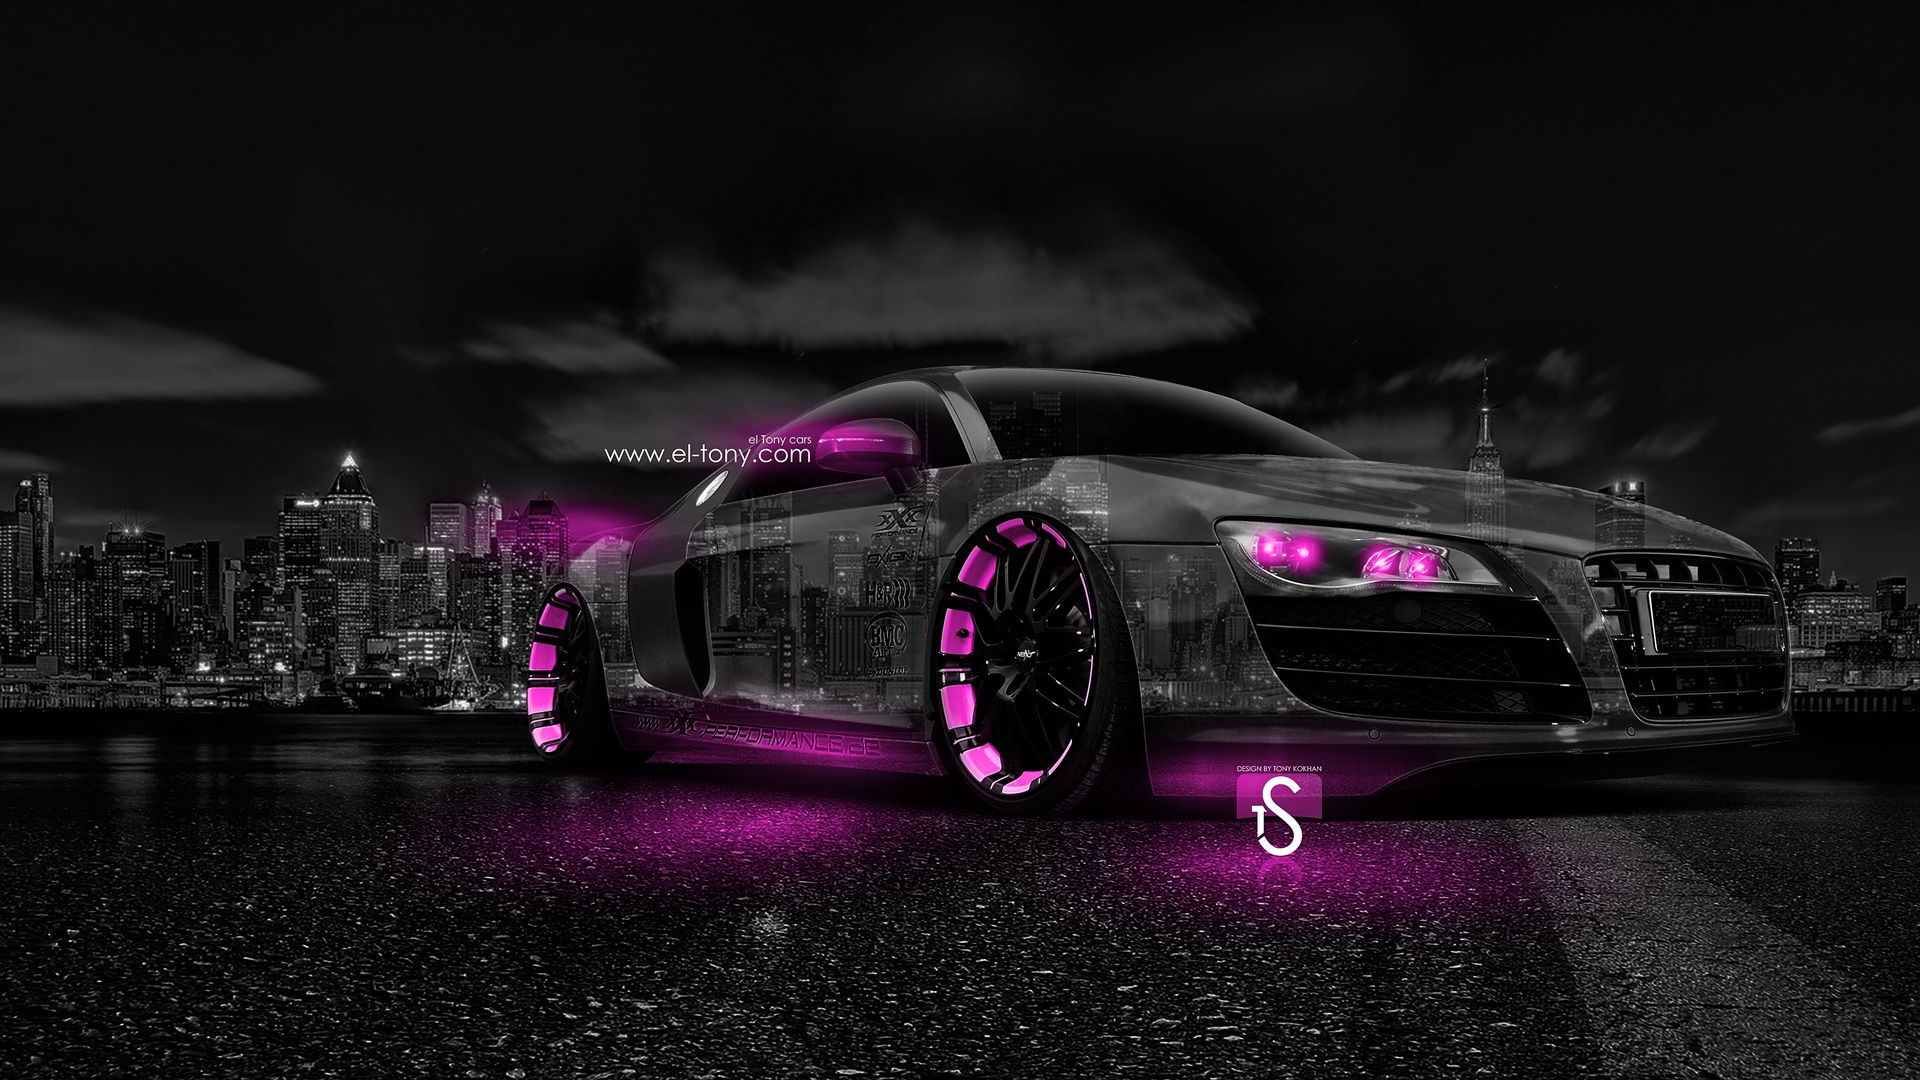 Cool Audi R8 Wallpaper For Mac | Audi Automotive Design ...